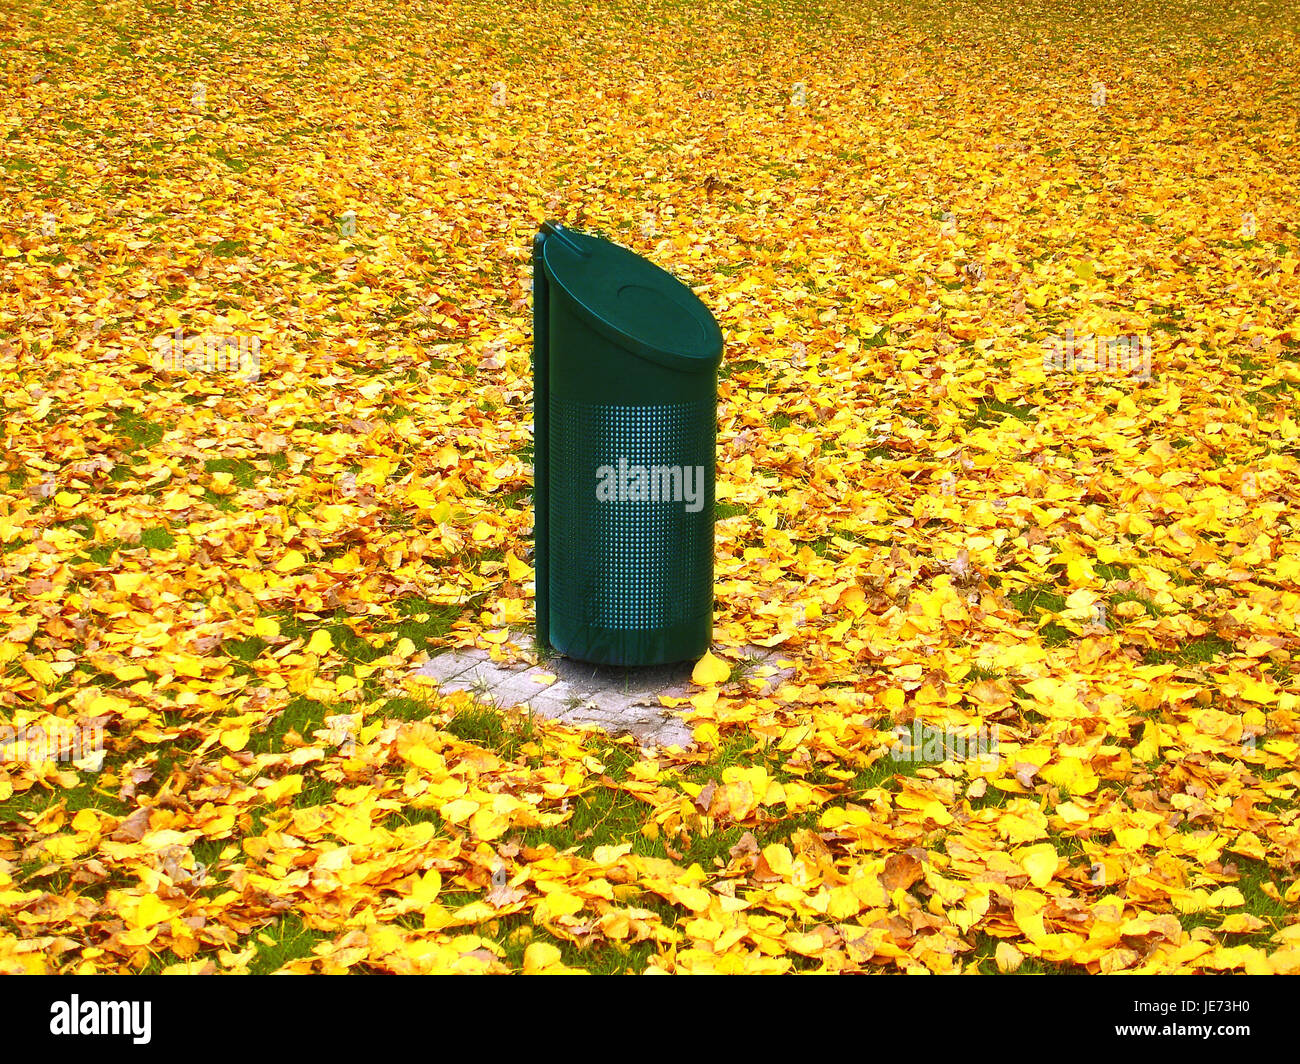 Garbage can on meadow with autumn foliage, - Stock Image